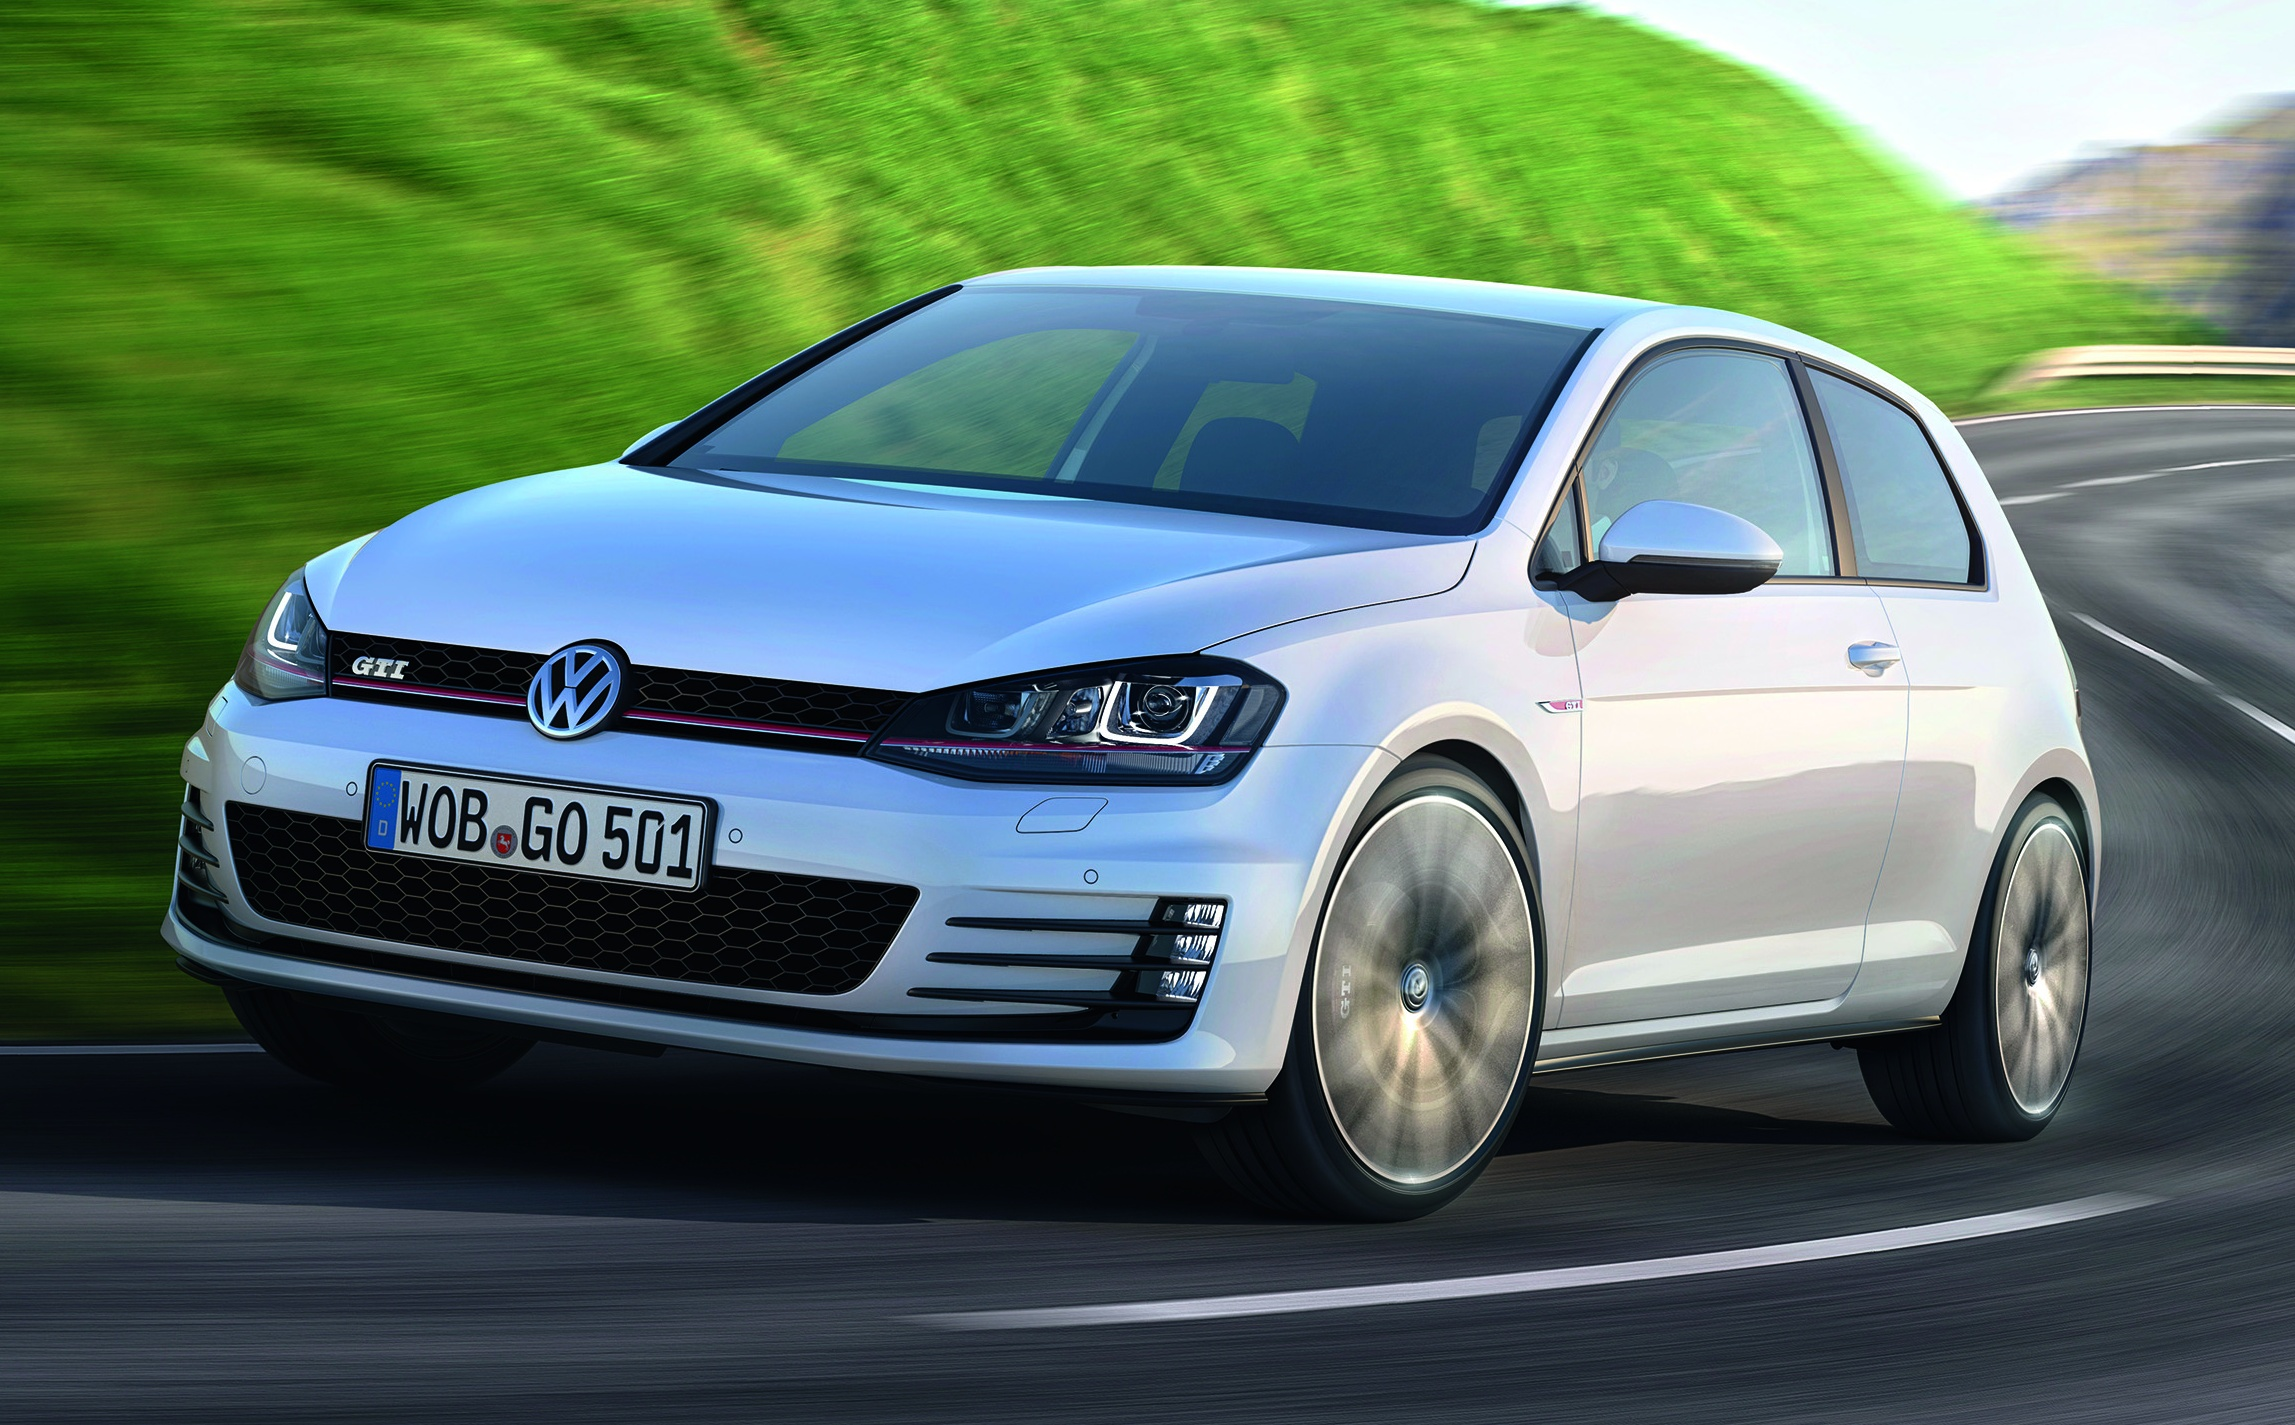 volkswagen golf gti mk7 to debut in geneva two output variants. Black Bedroom Furniture Sets. Home Design Ideas